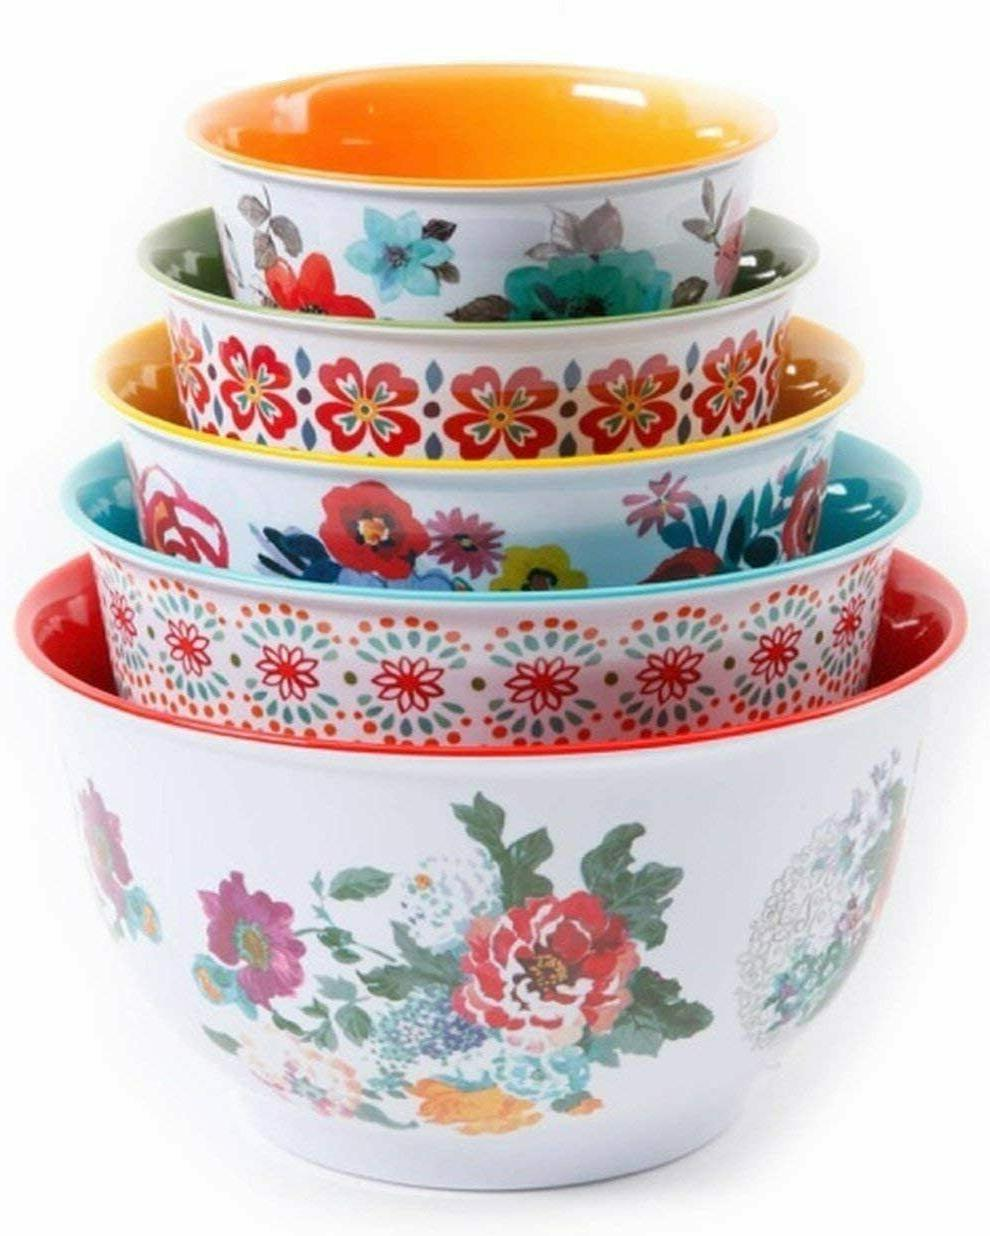 the 10 piece nesting mixing serving bowl